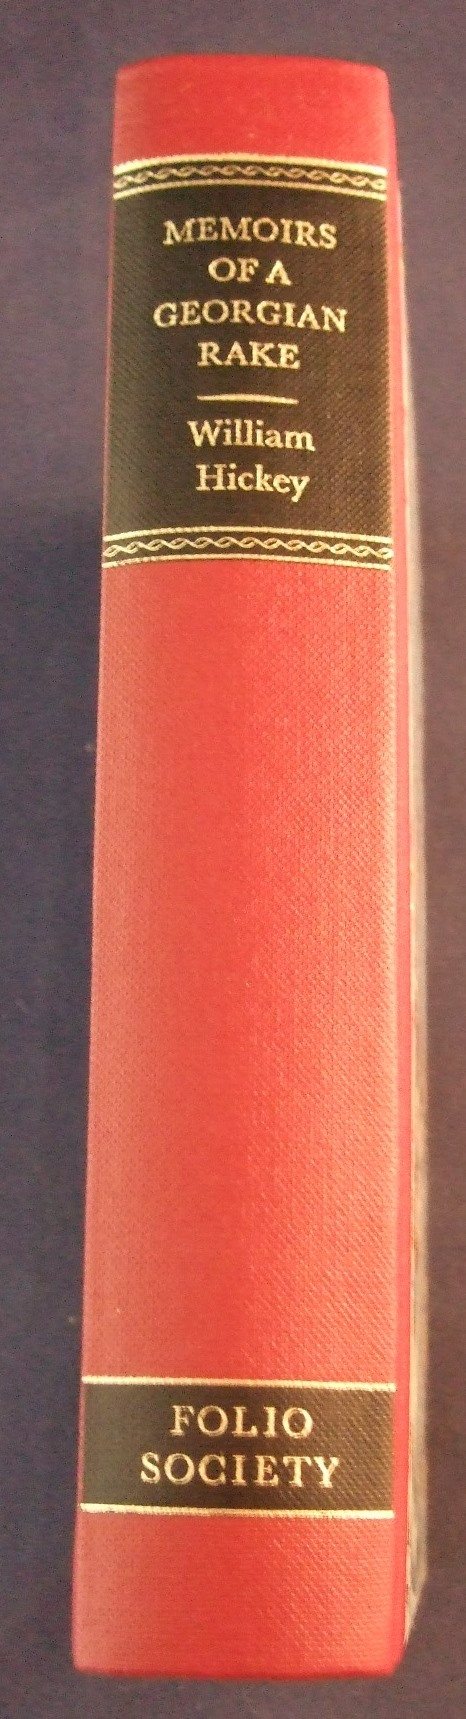 Whickey georgian rake memoirs hb spine